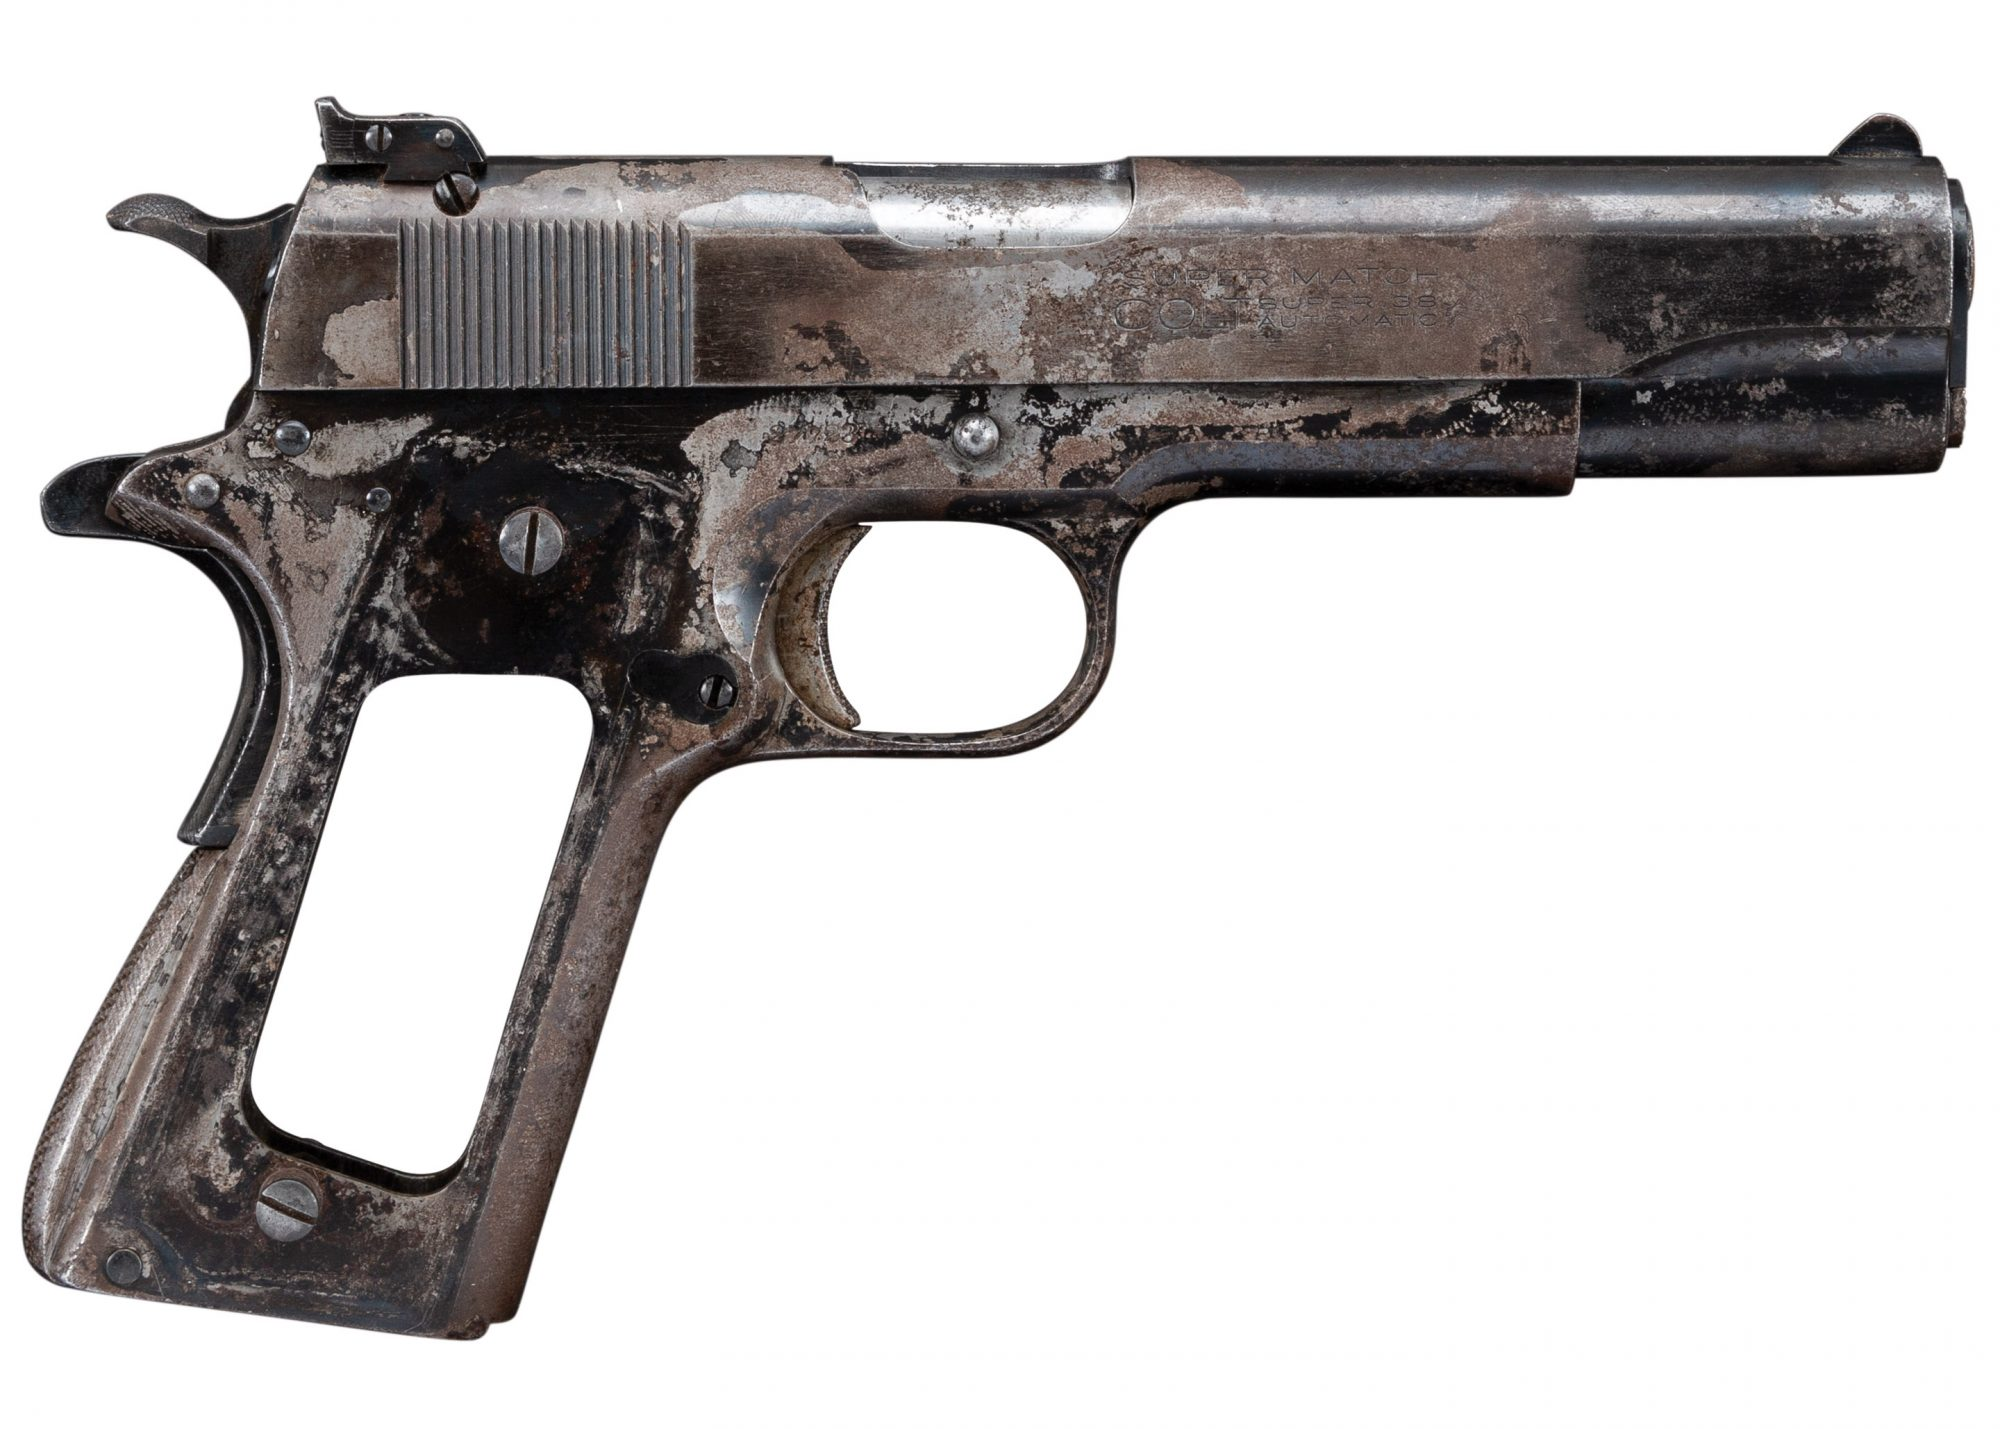 Photo of a Colt Super Match .38 Super Automatic pistol before restoration by Turnbull Restoration of Bloomfield, NY